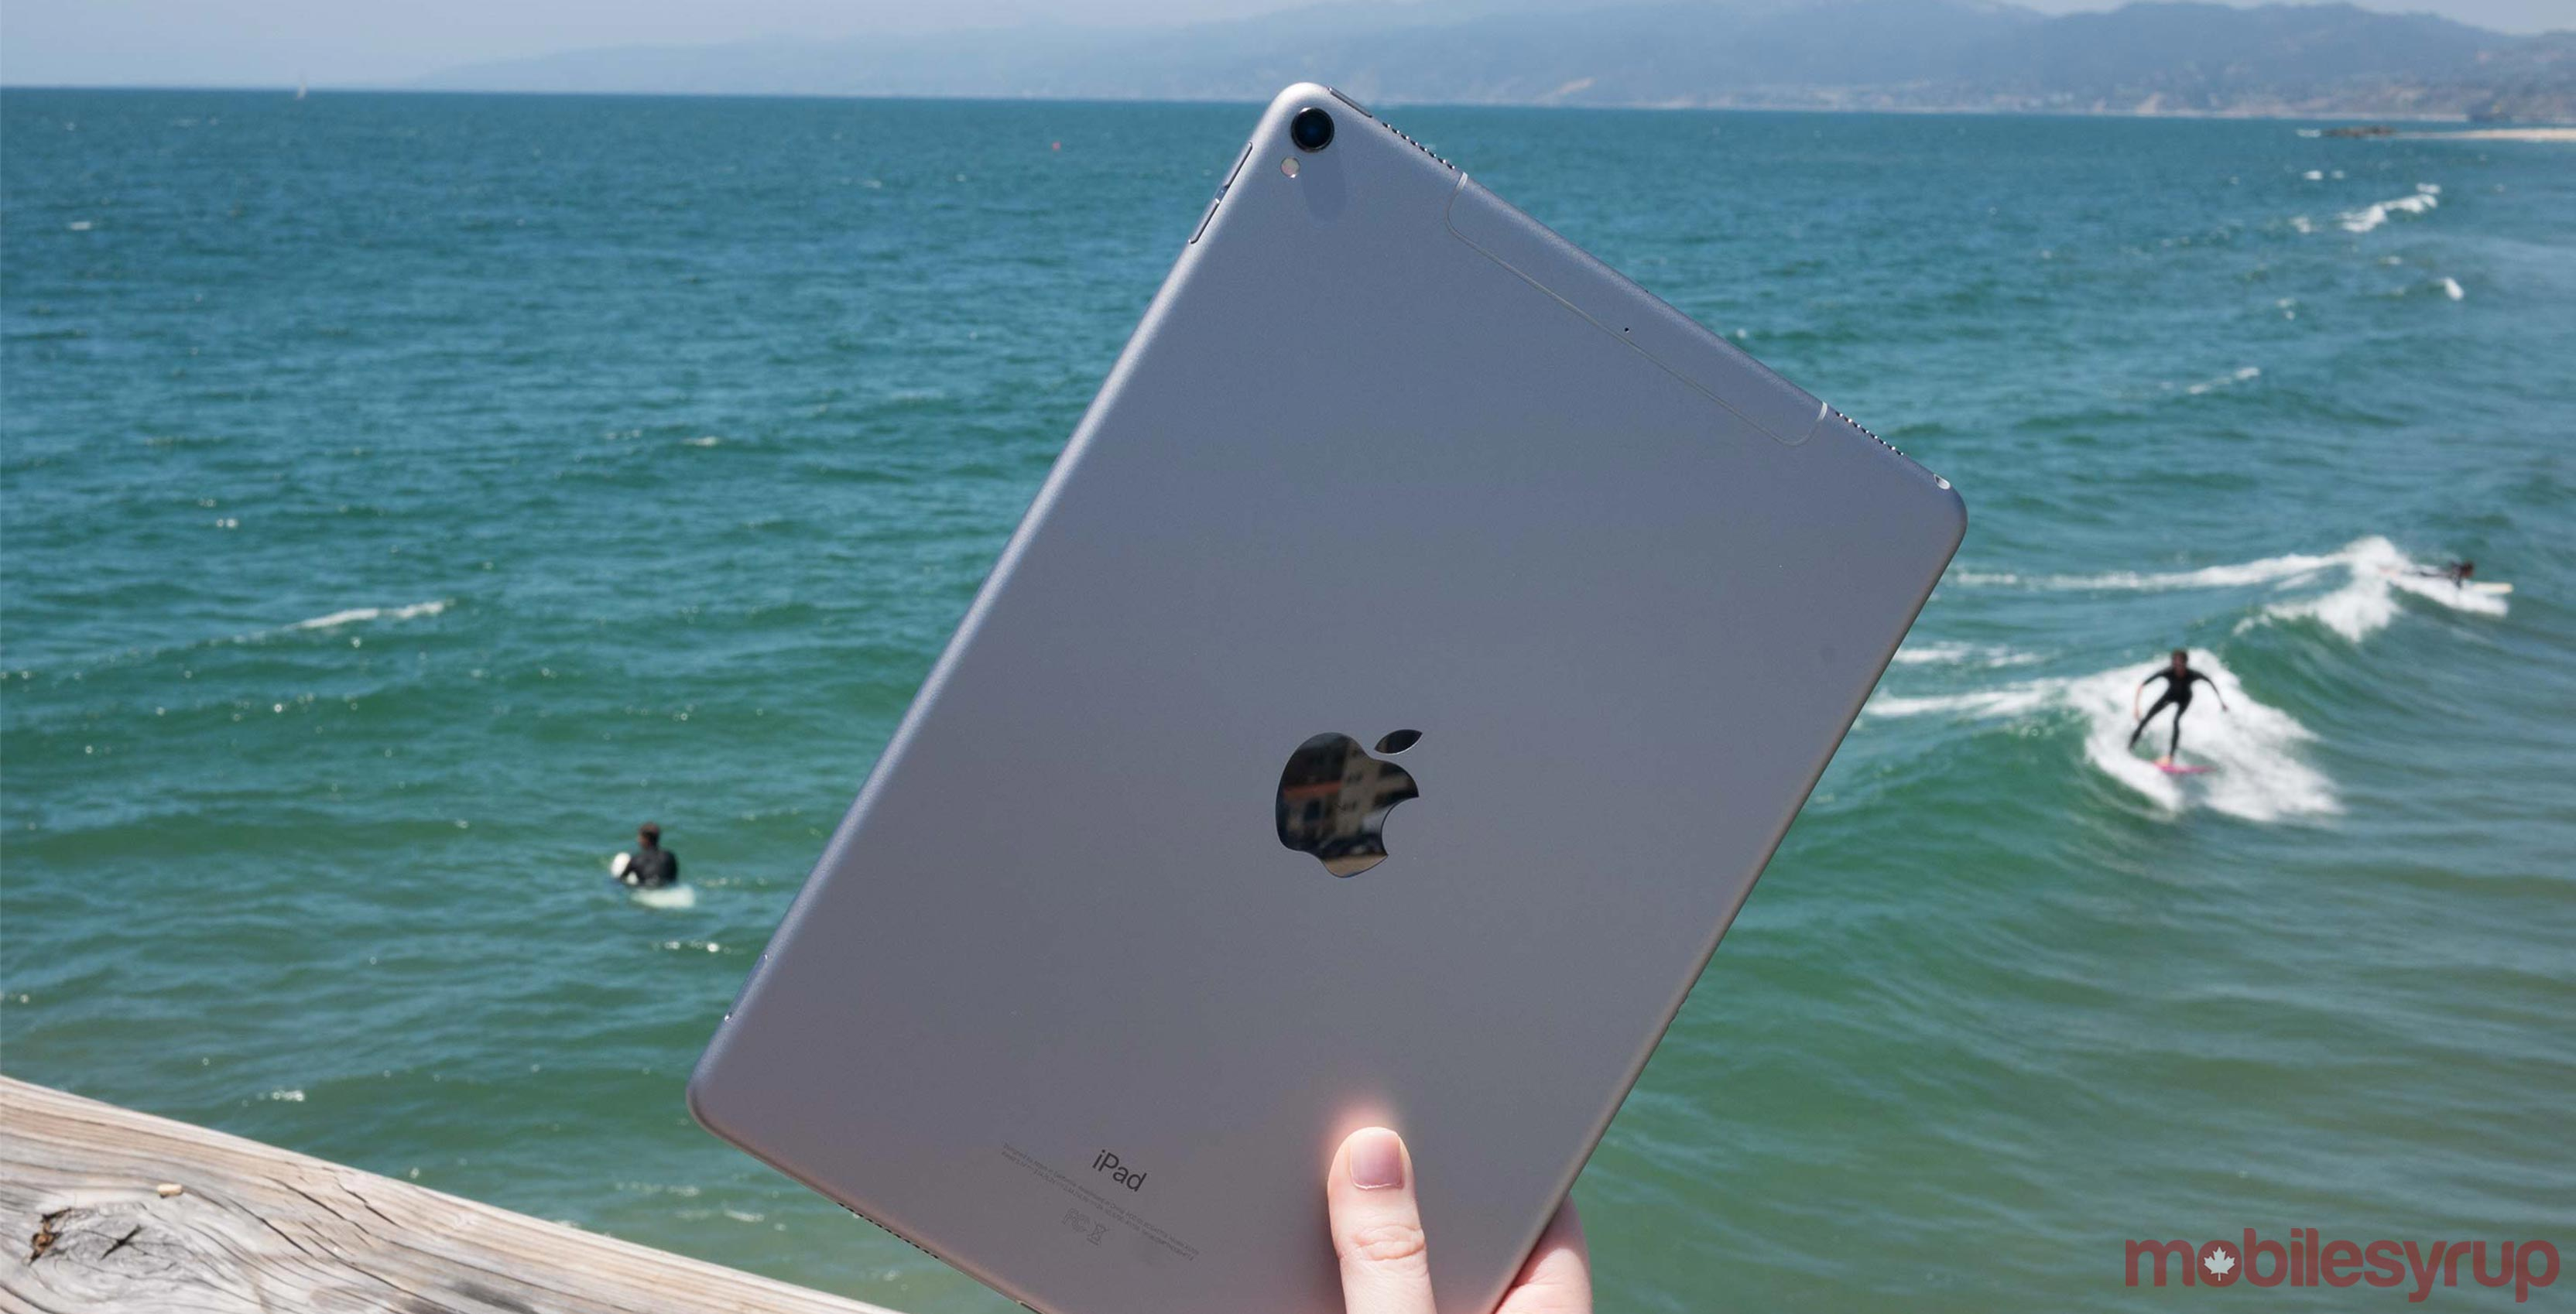 Apple's new iPad is fine, but it's no Chromebook killer